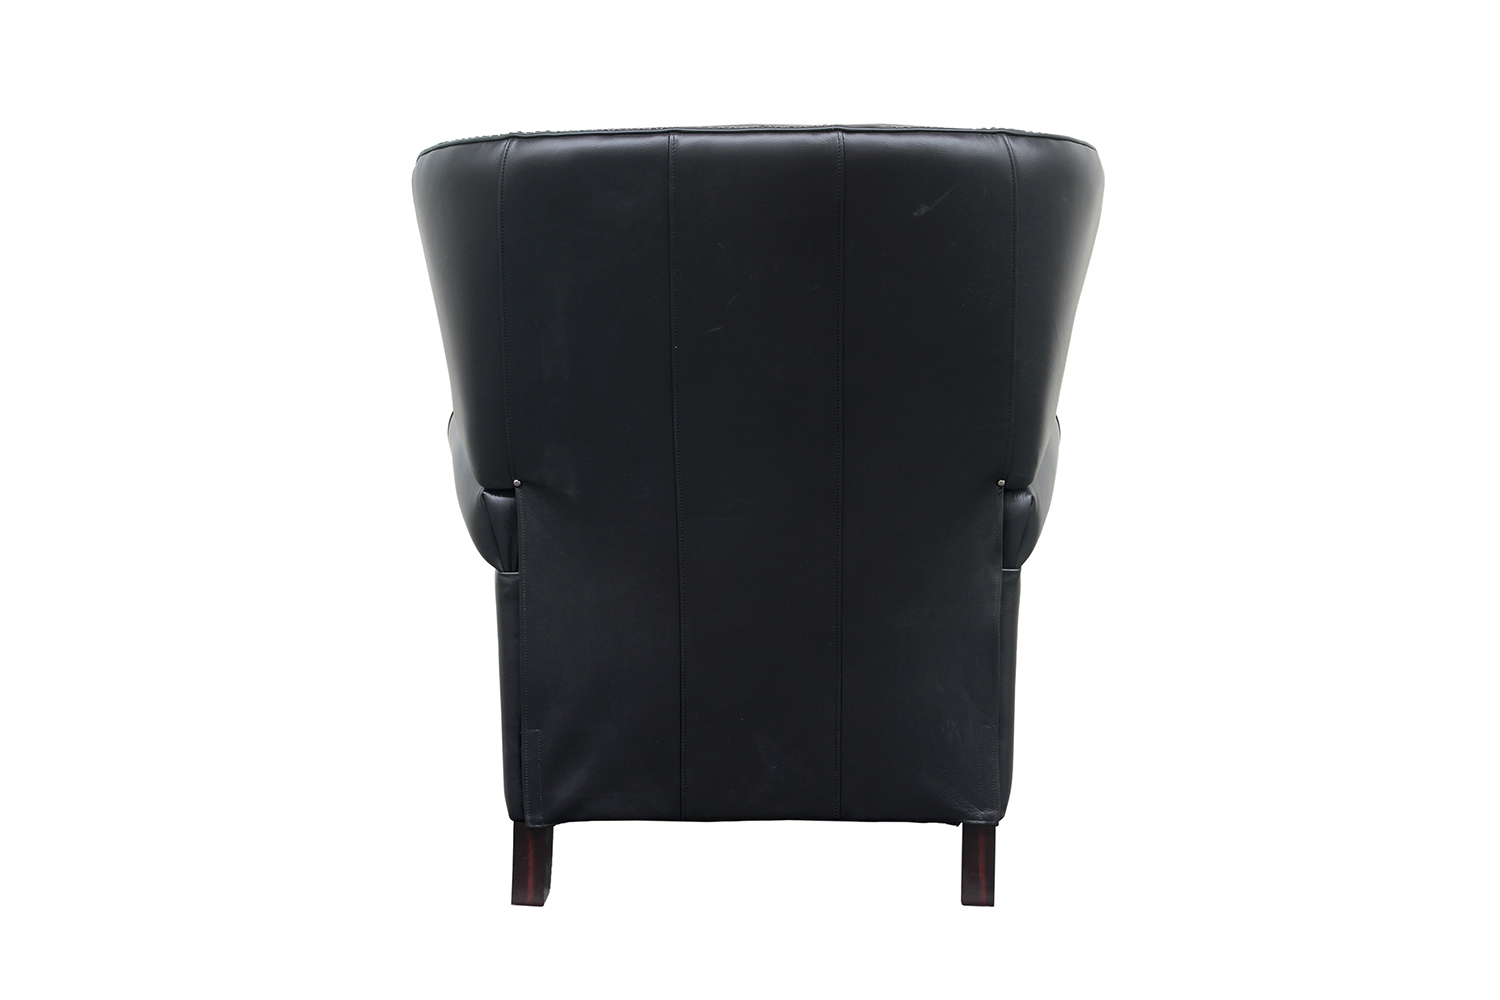 Barcalounger Presidential Recliner Chair - Wenlock Onyx/All Leather